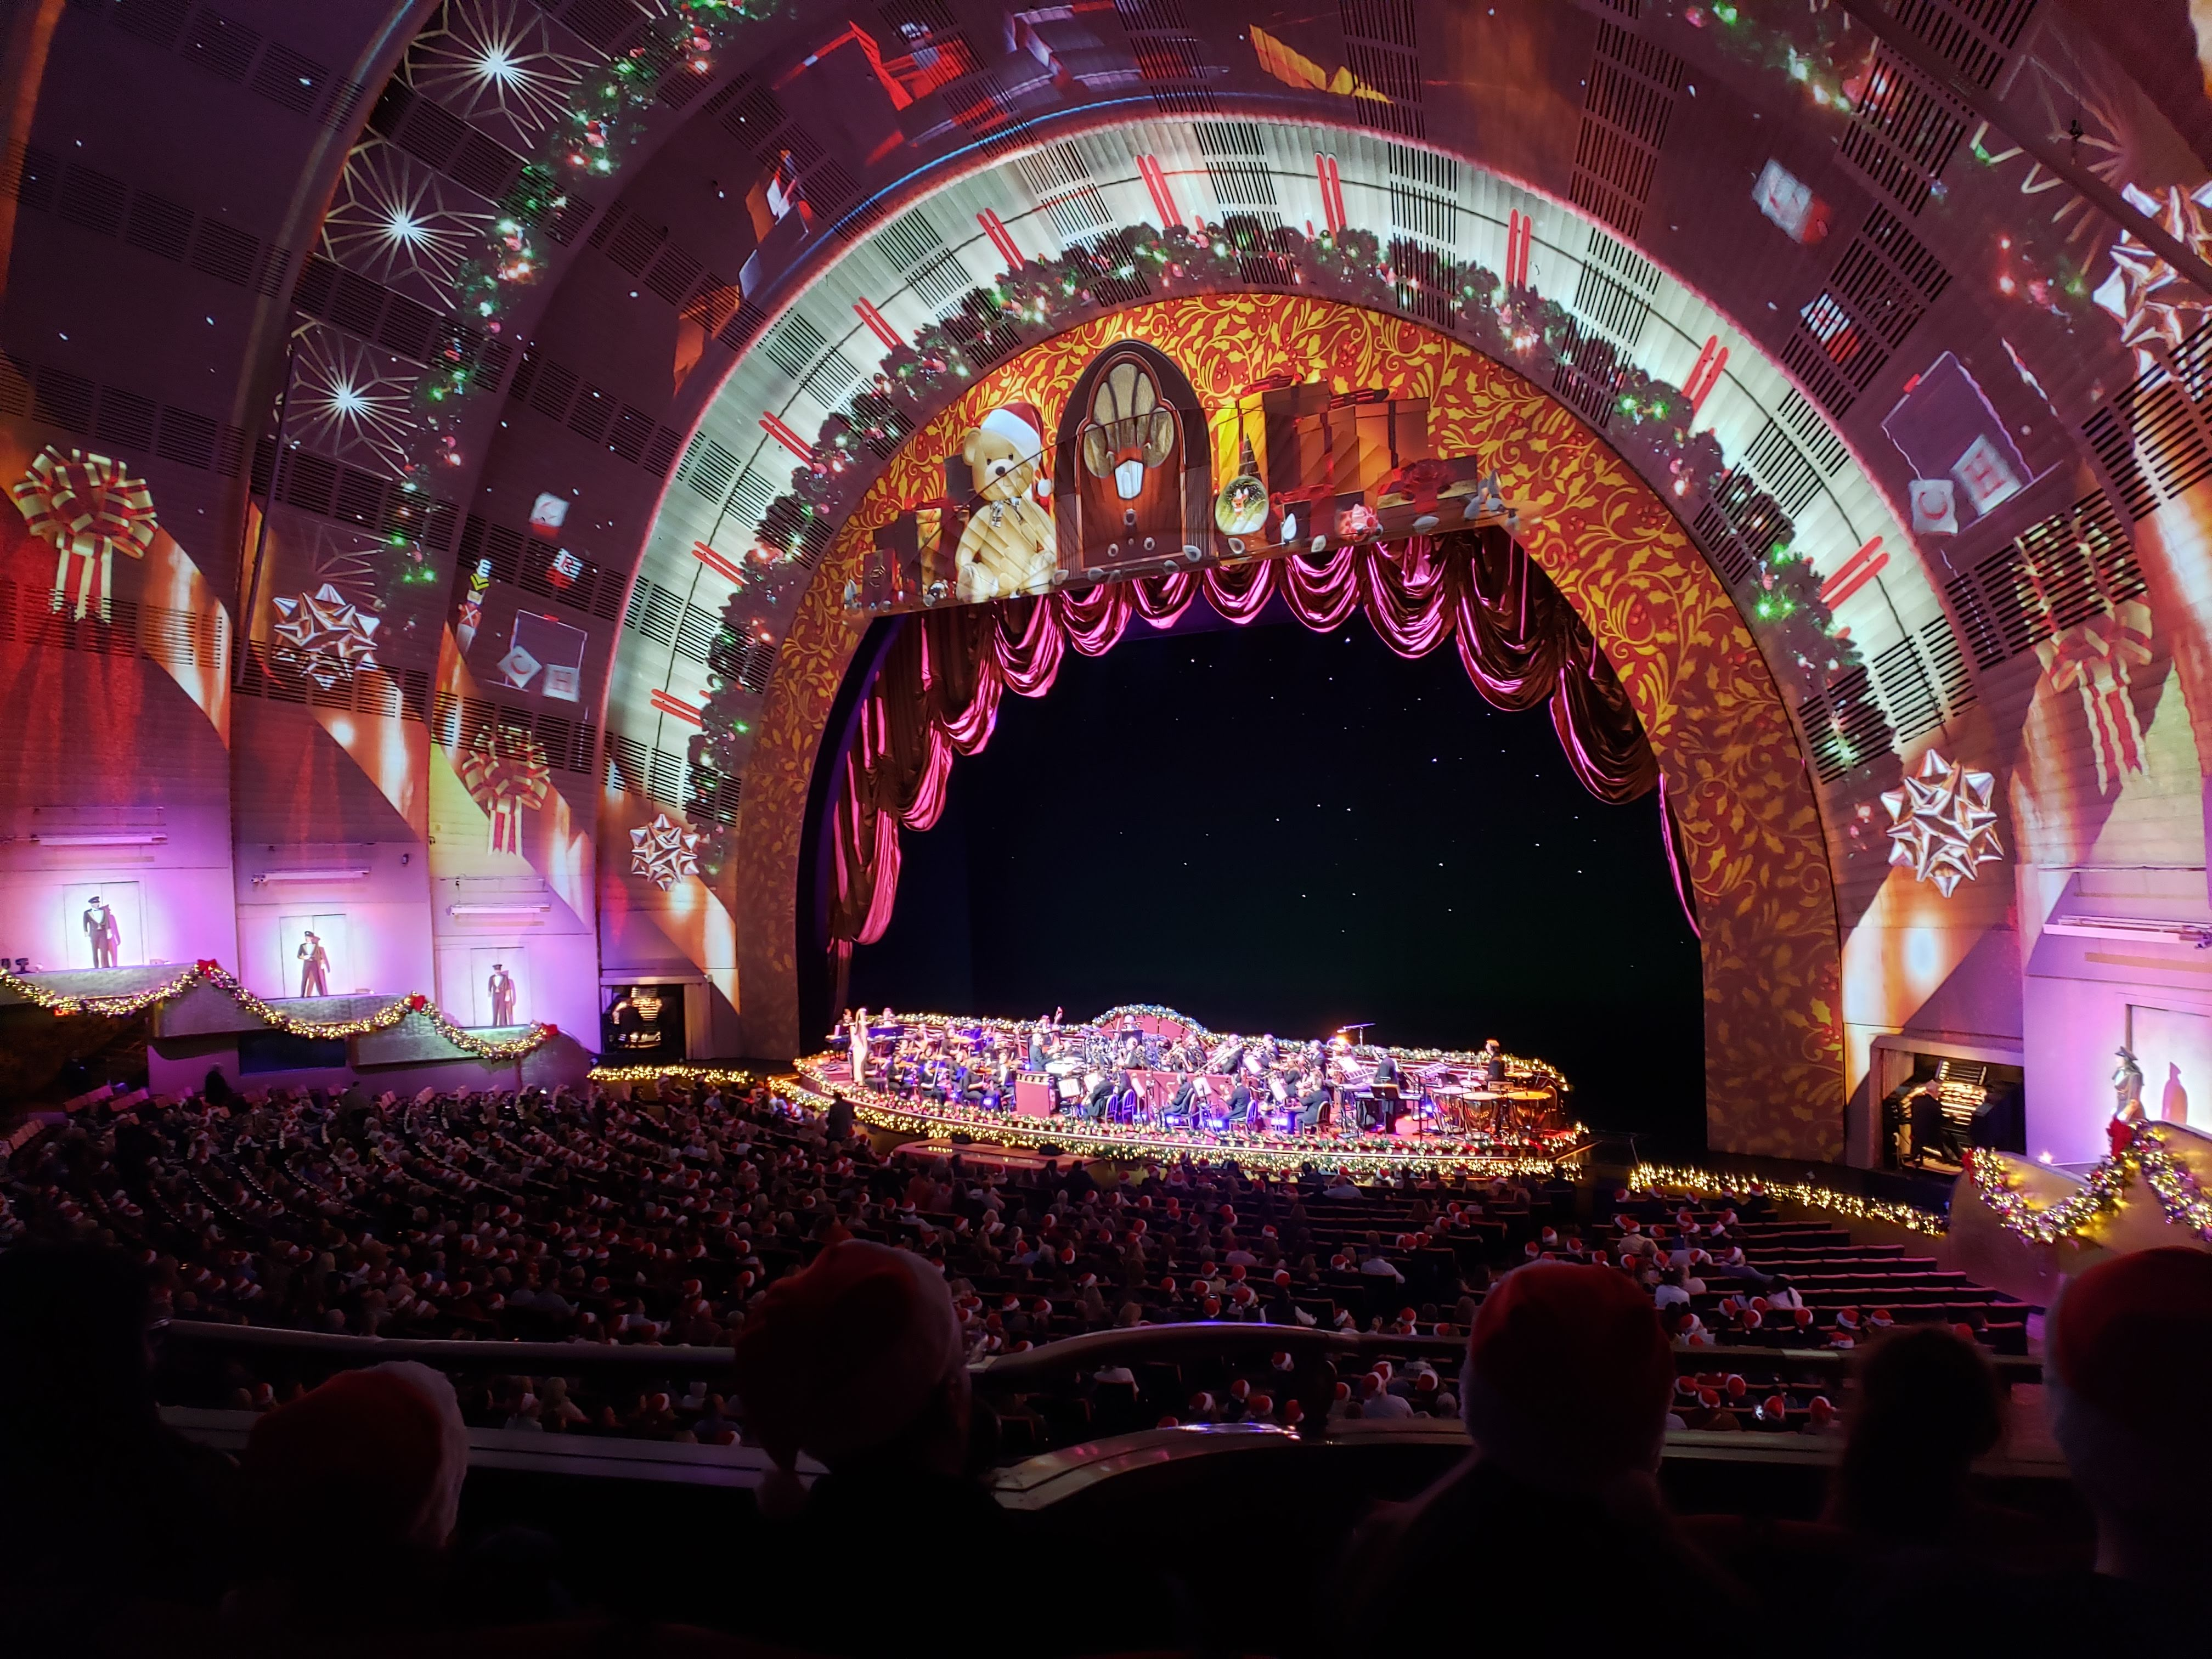 Review Radio City Christmas Spectacular 2020 The Rockettes Christmas Spectacular Review: Is it worth it this year?